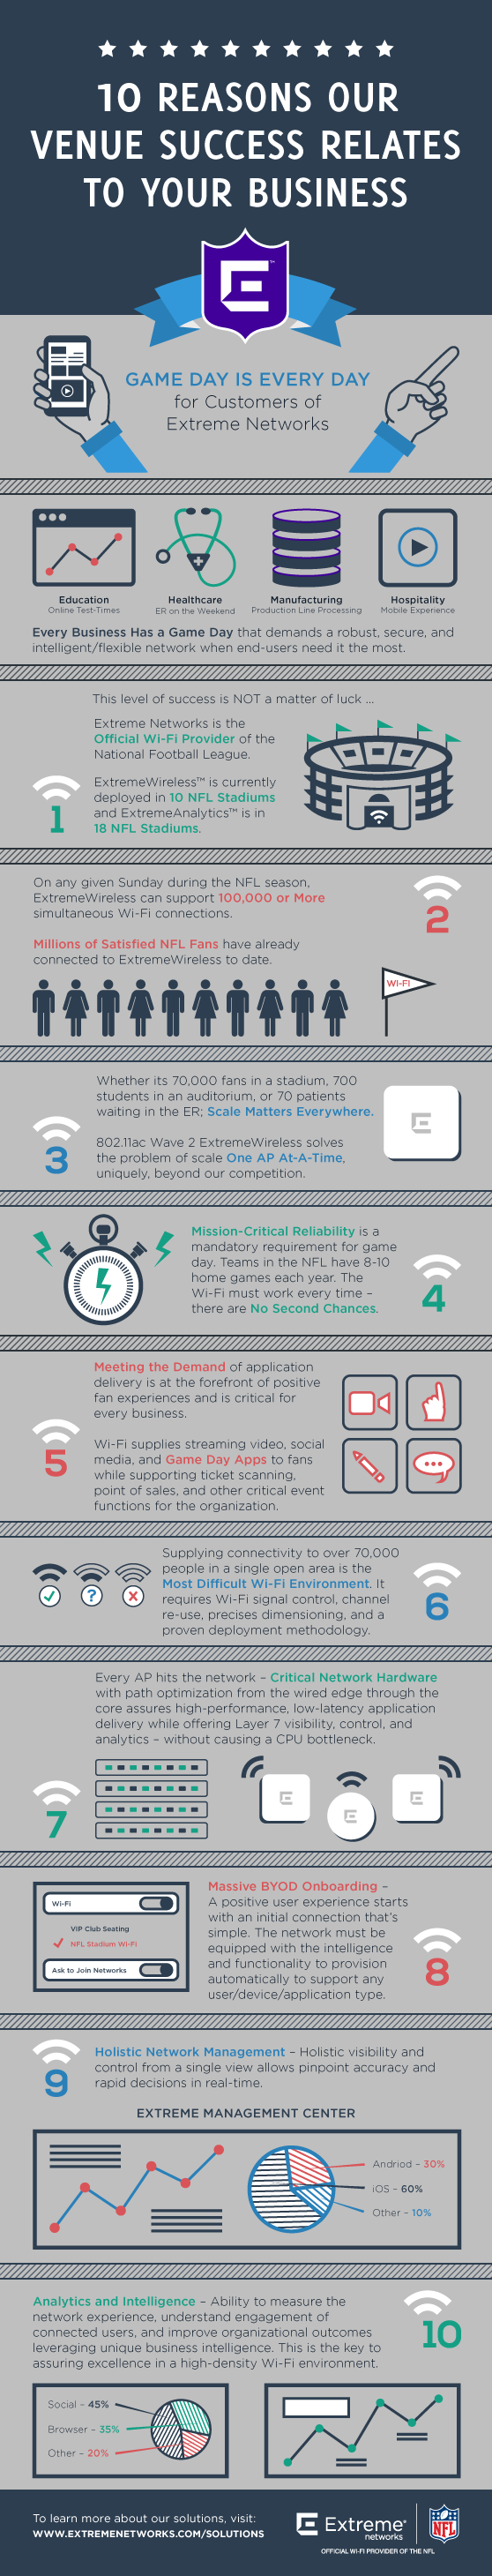 nfl-wifi-provider-infographic.png